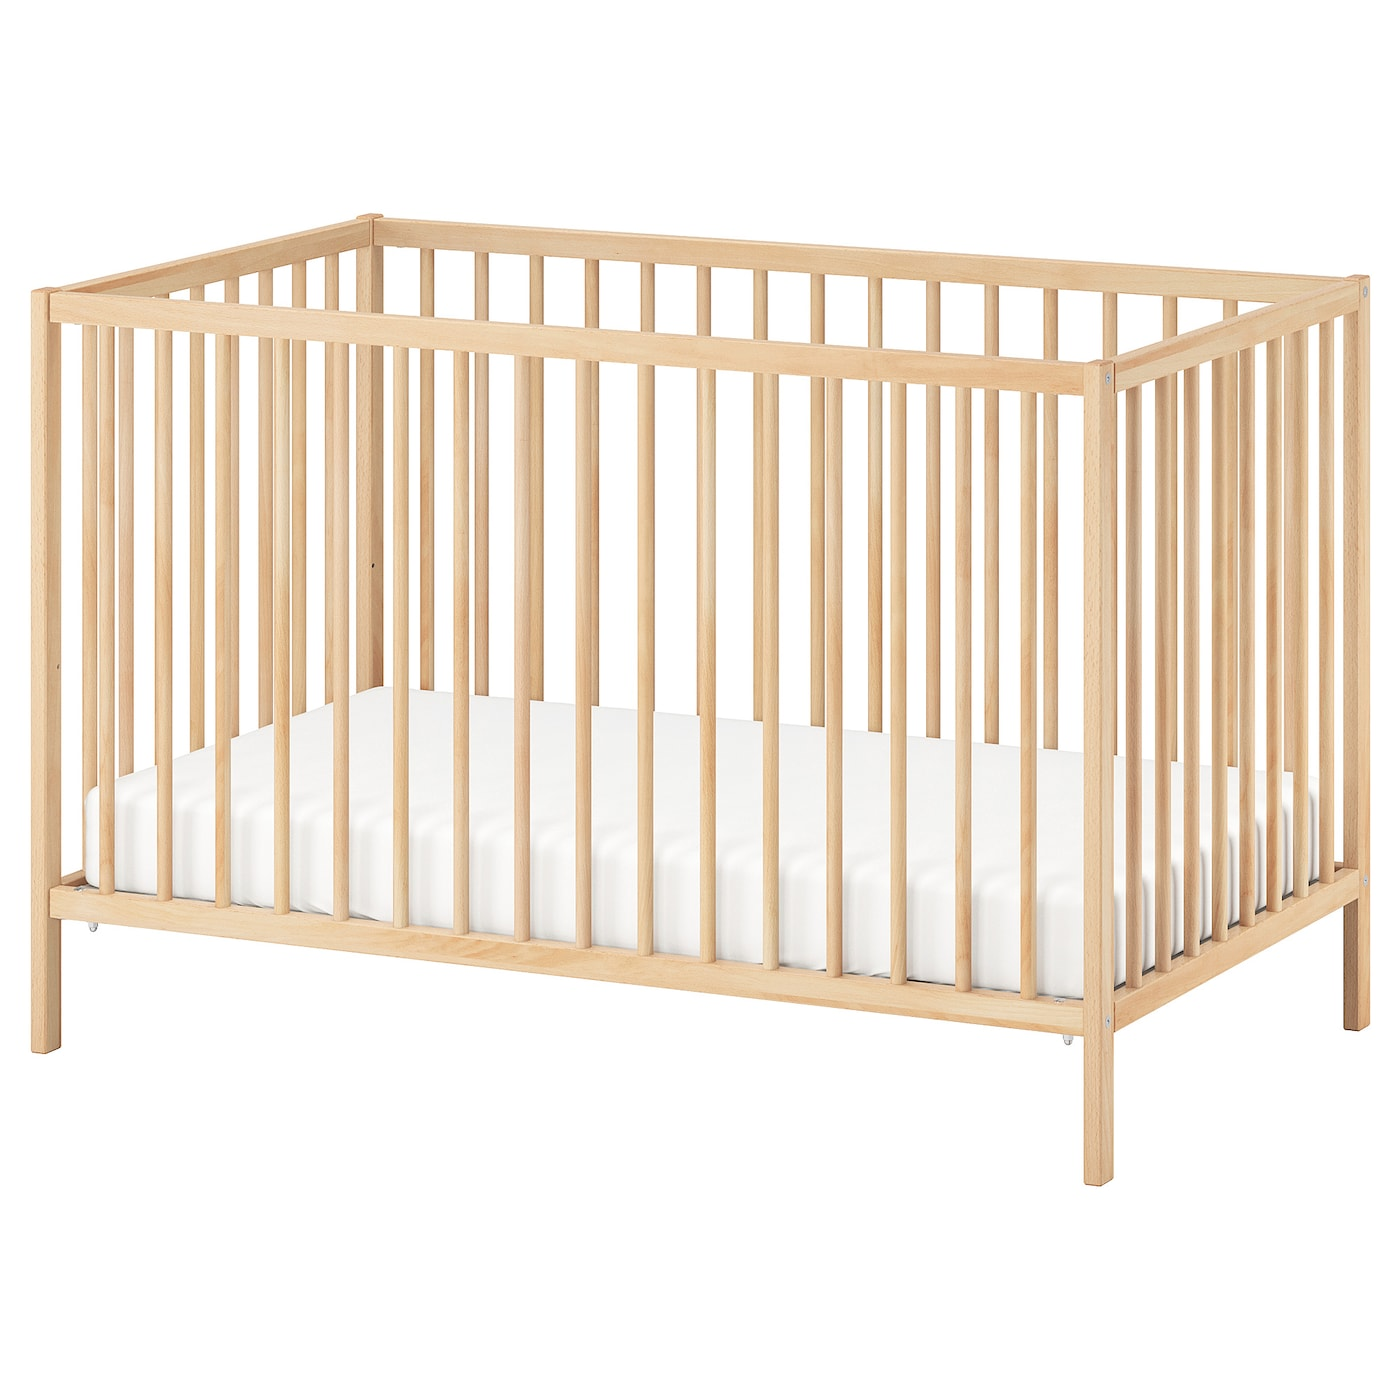 IKEA SNIGLAR cot The cot base can be placed at two different heights.